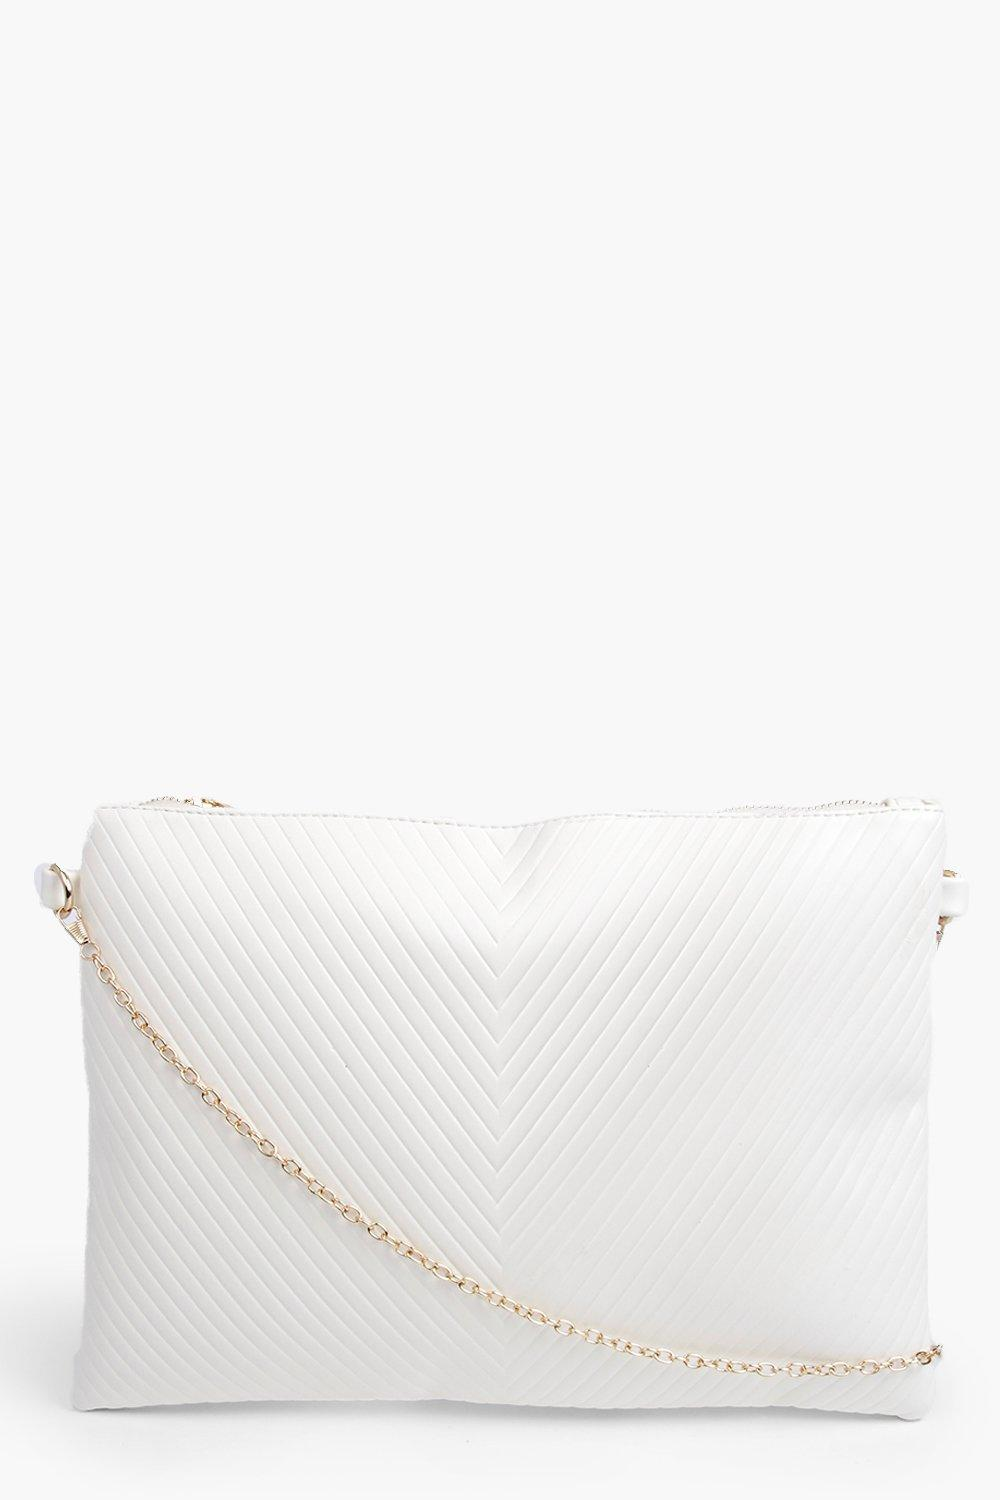 Panelled Oversized Clutch Bag white